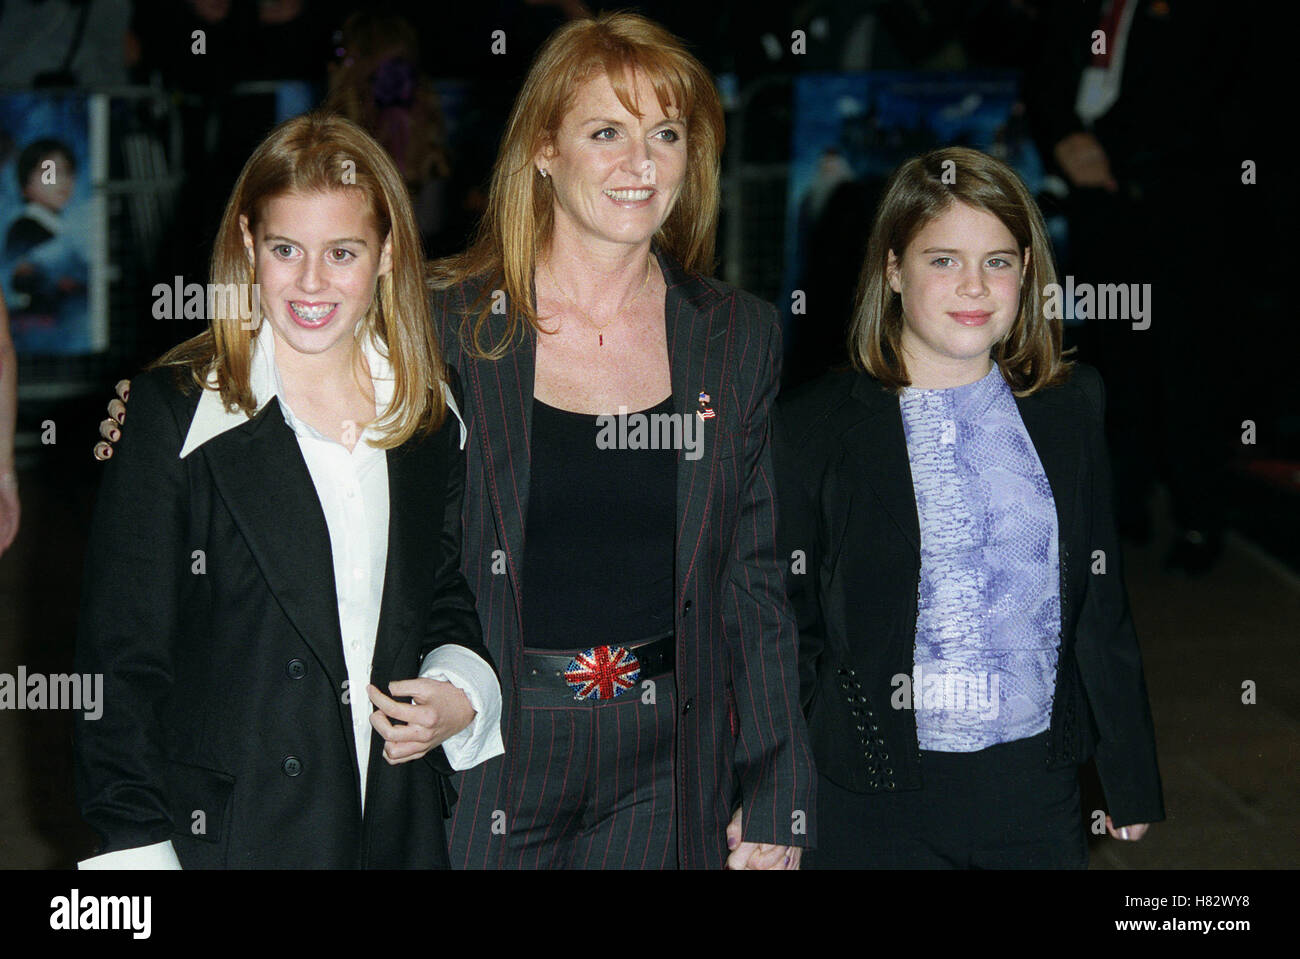 SARAH FERGUSON WITH PRINCESSES WORLD PREMIER 'HARRY POTTER' LEICESTER SQ LONDON ENGLAND 04 November 2001 - Stock Image